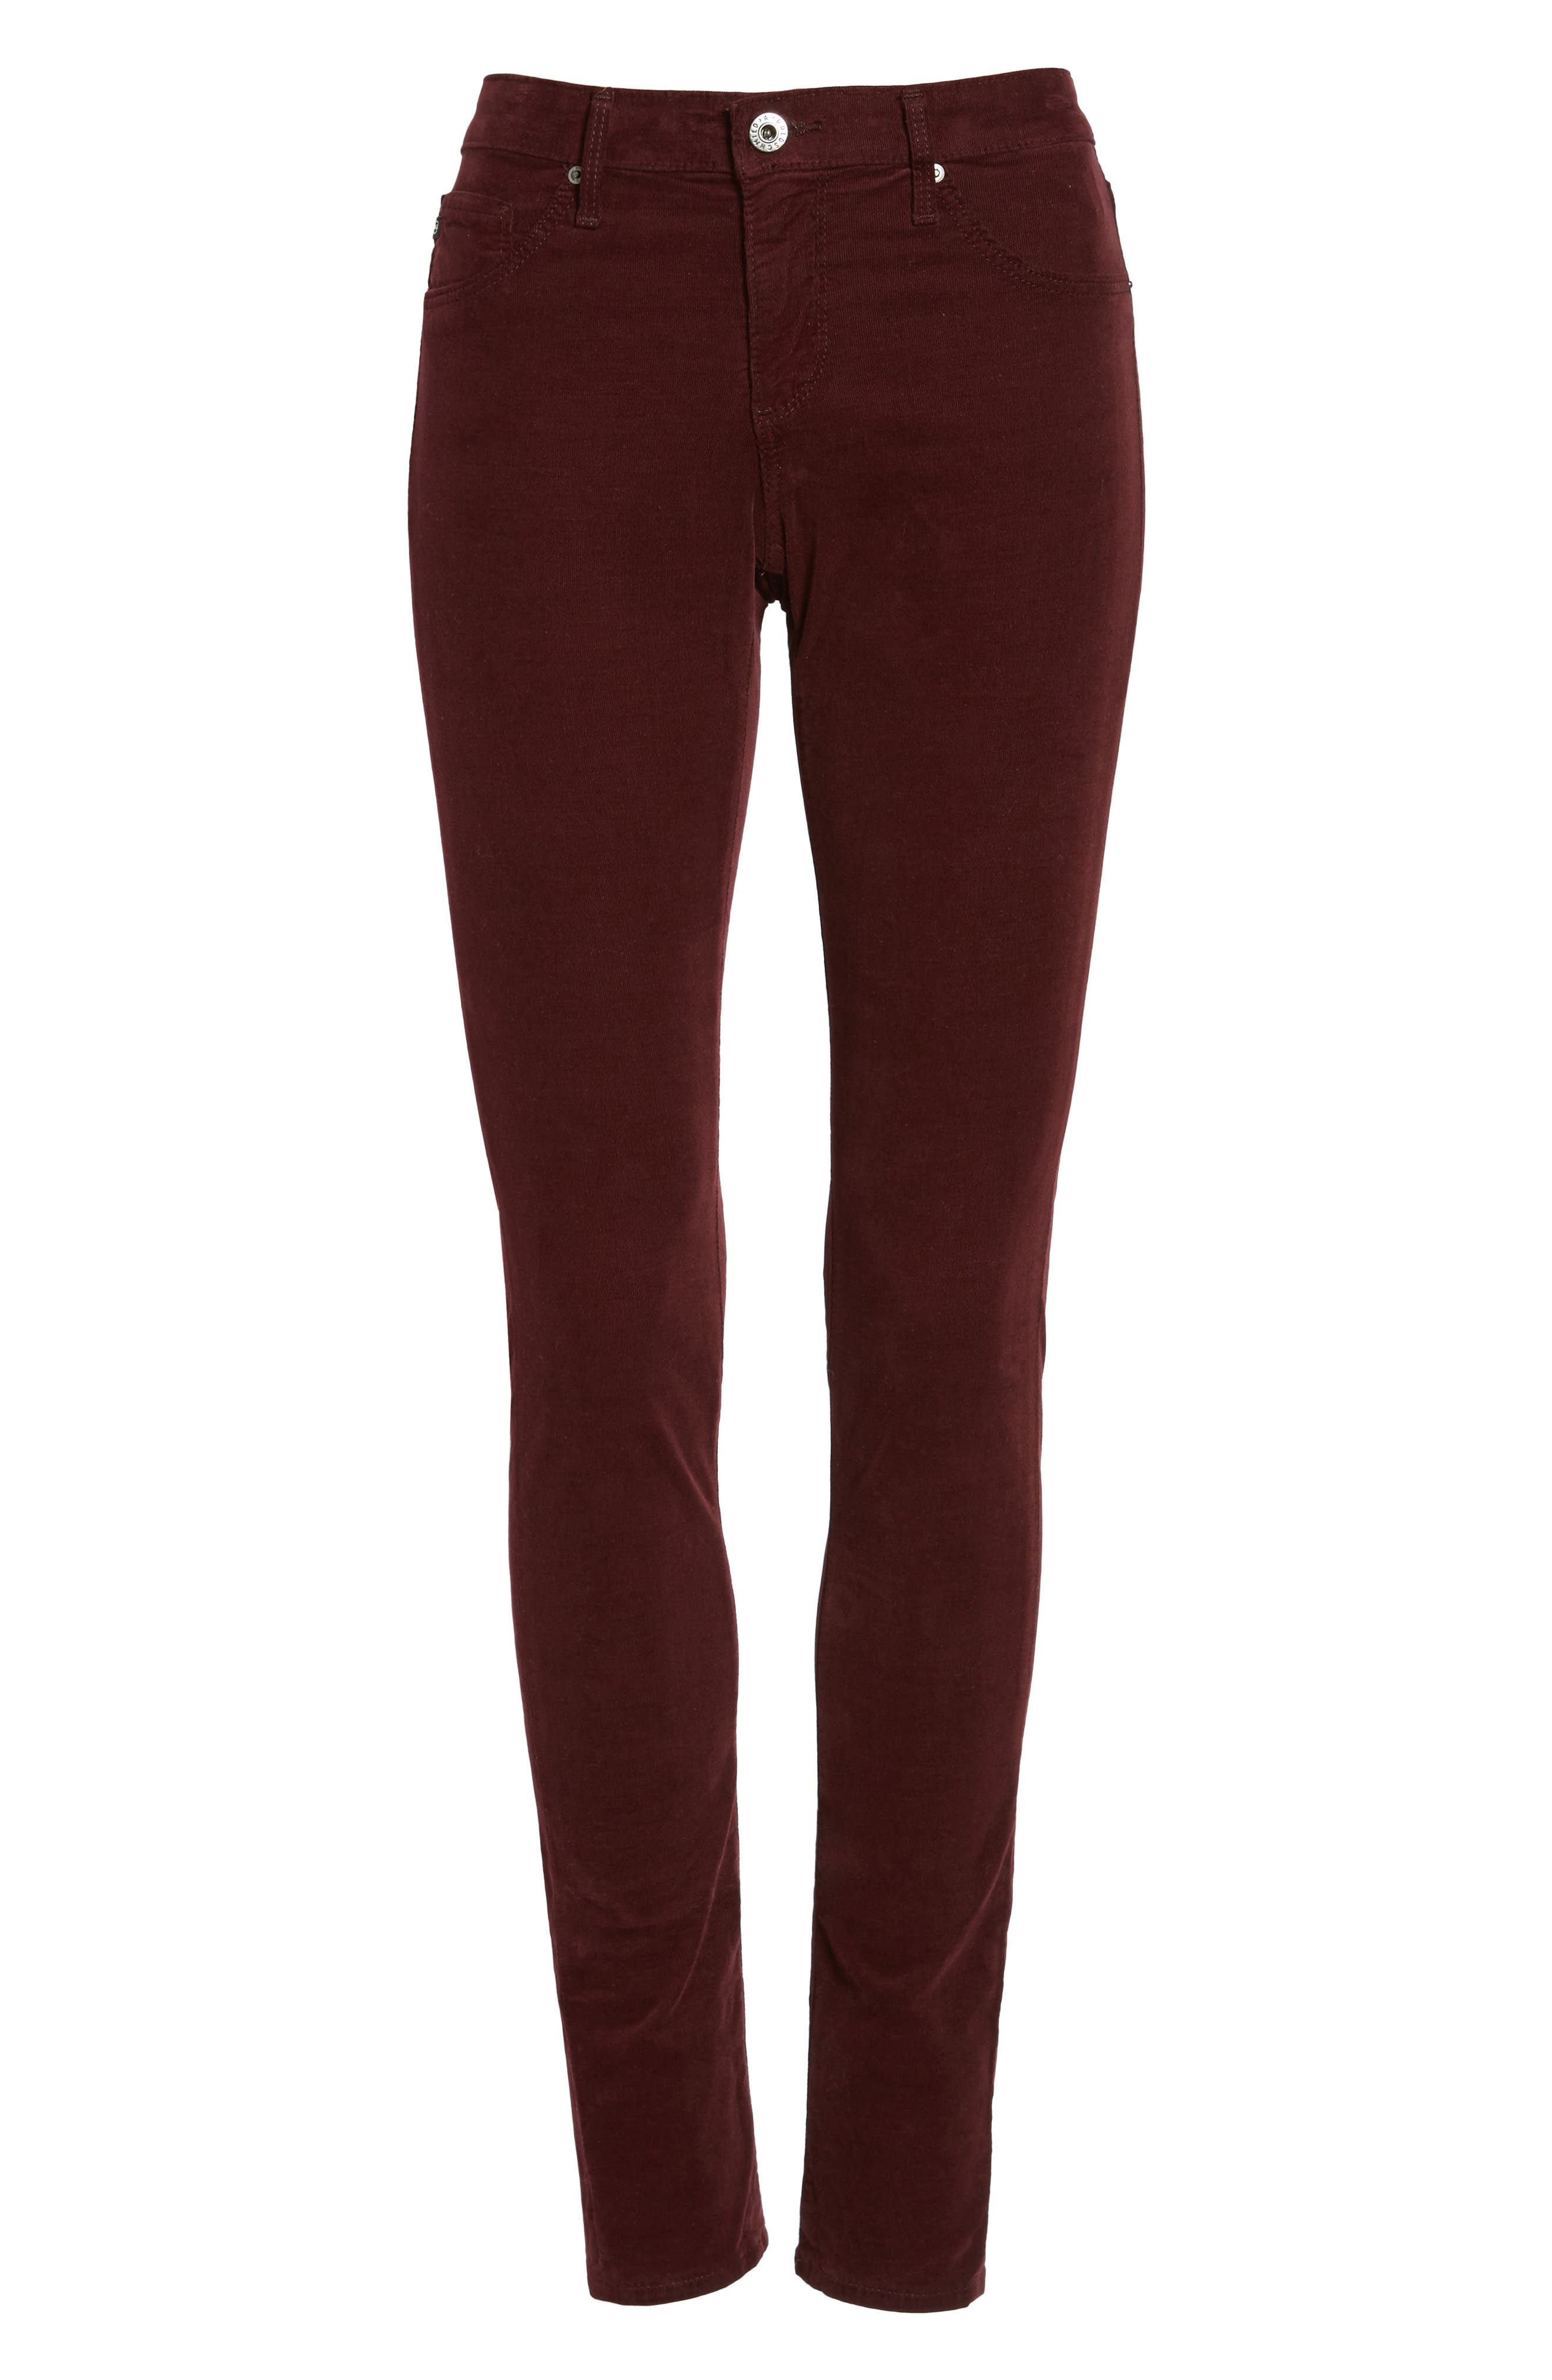 The Legging Super Skinny Corduroy Pants,                             Alternate thumbnail 6, color,                             Deep Currant